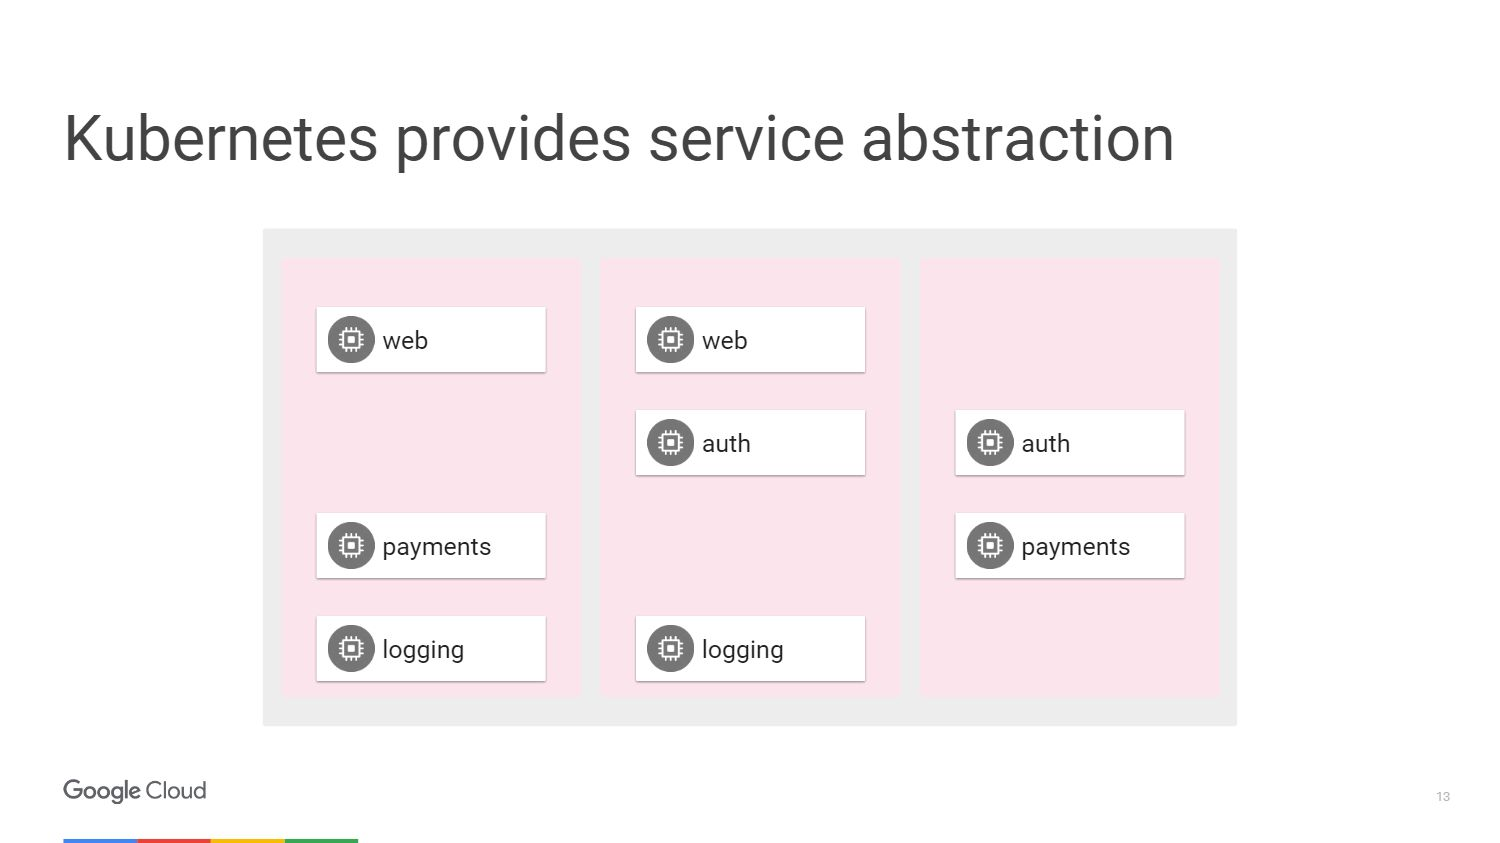 Management of micro services using Kubernetes and Istio